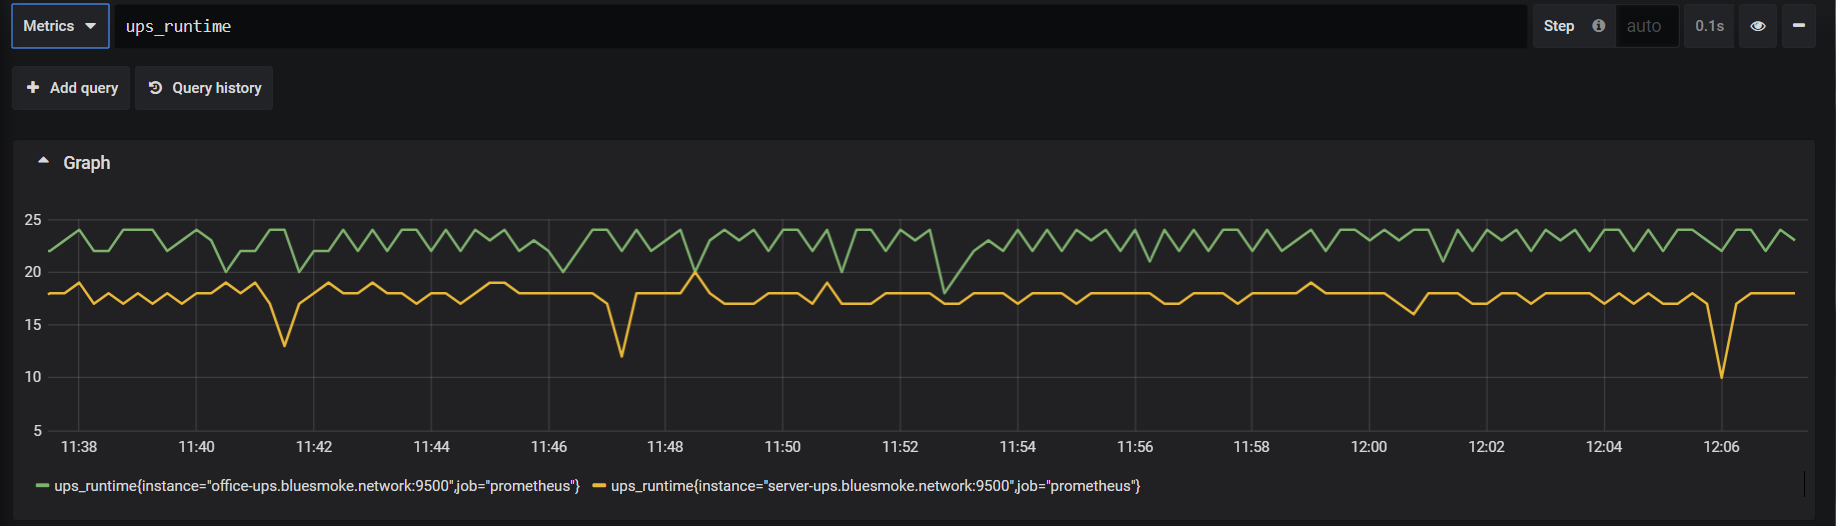 Graphana runtime graph